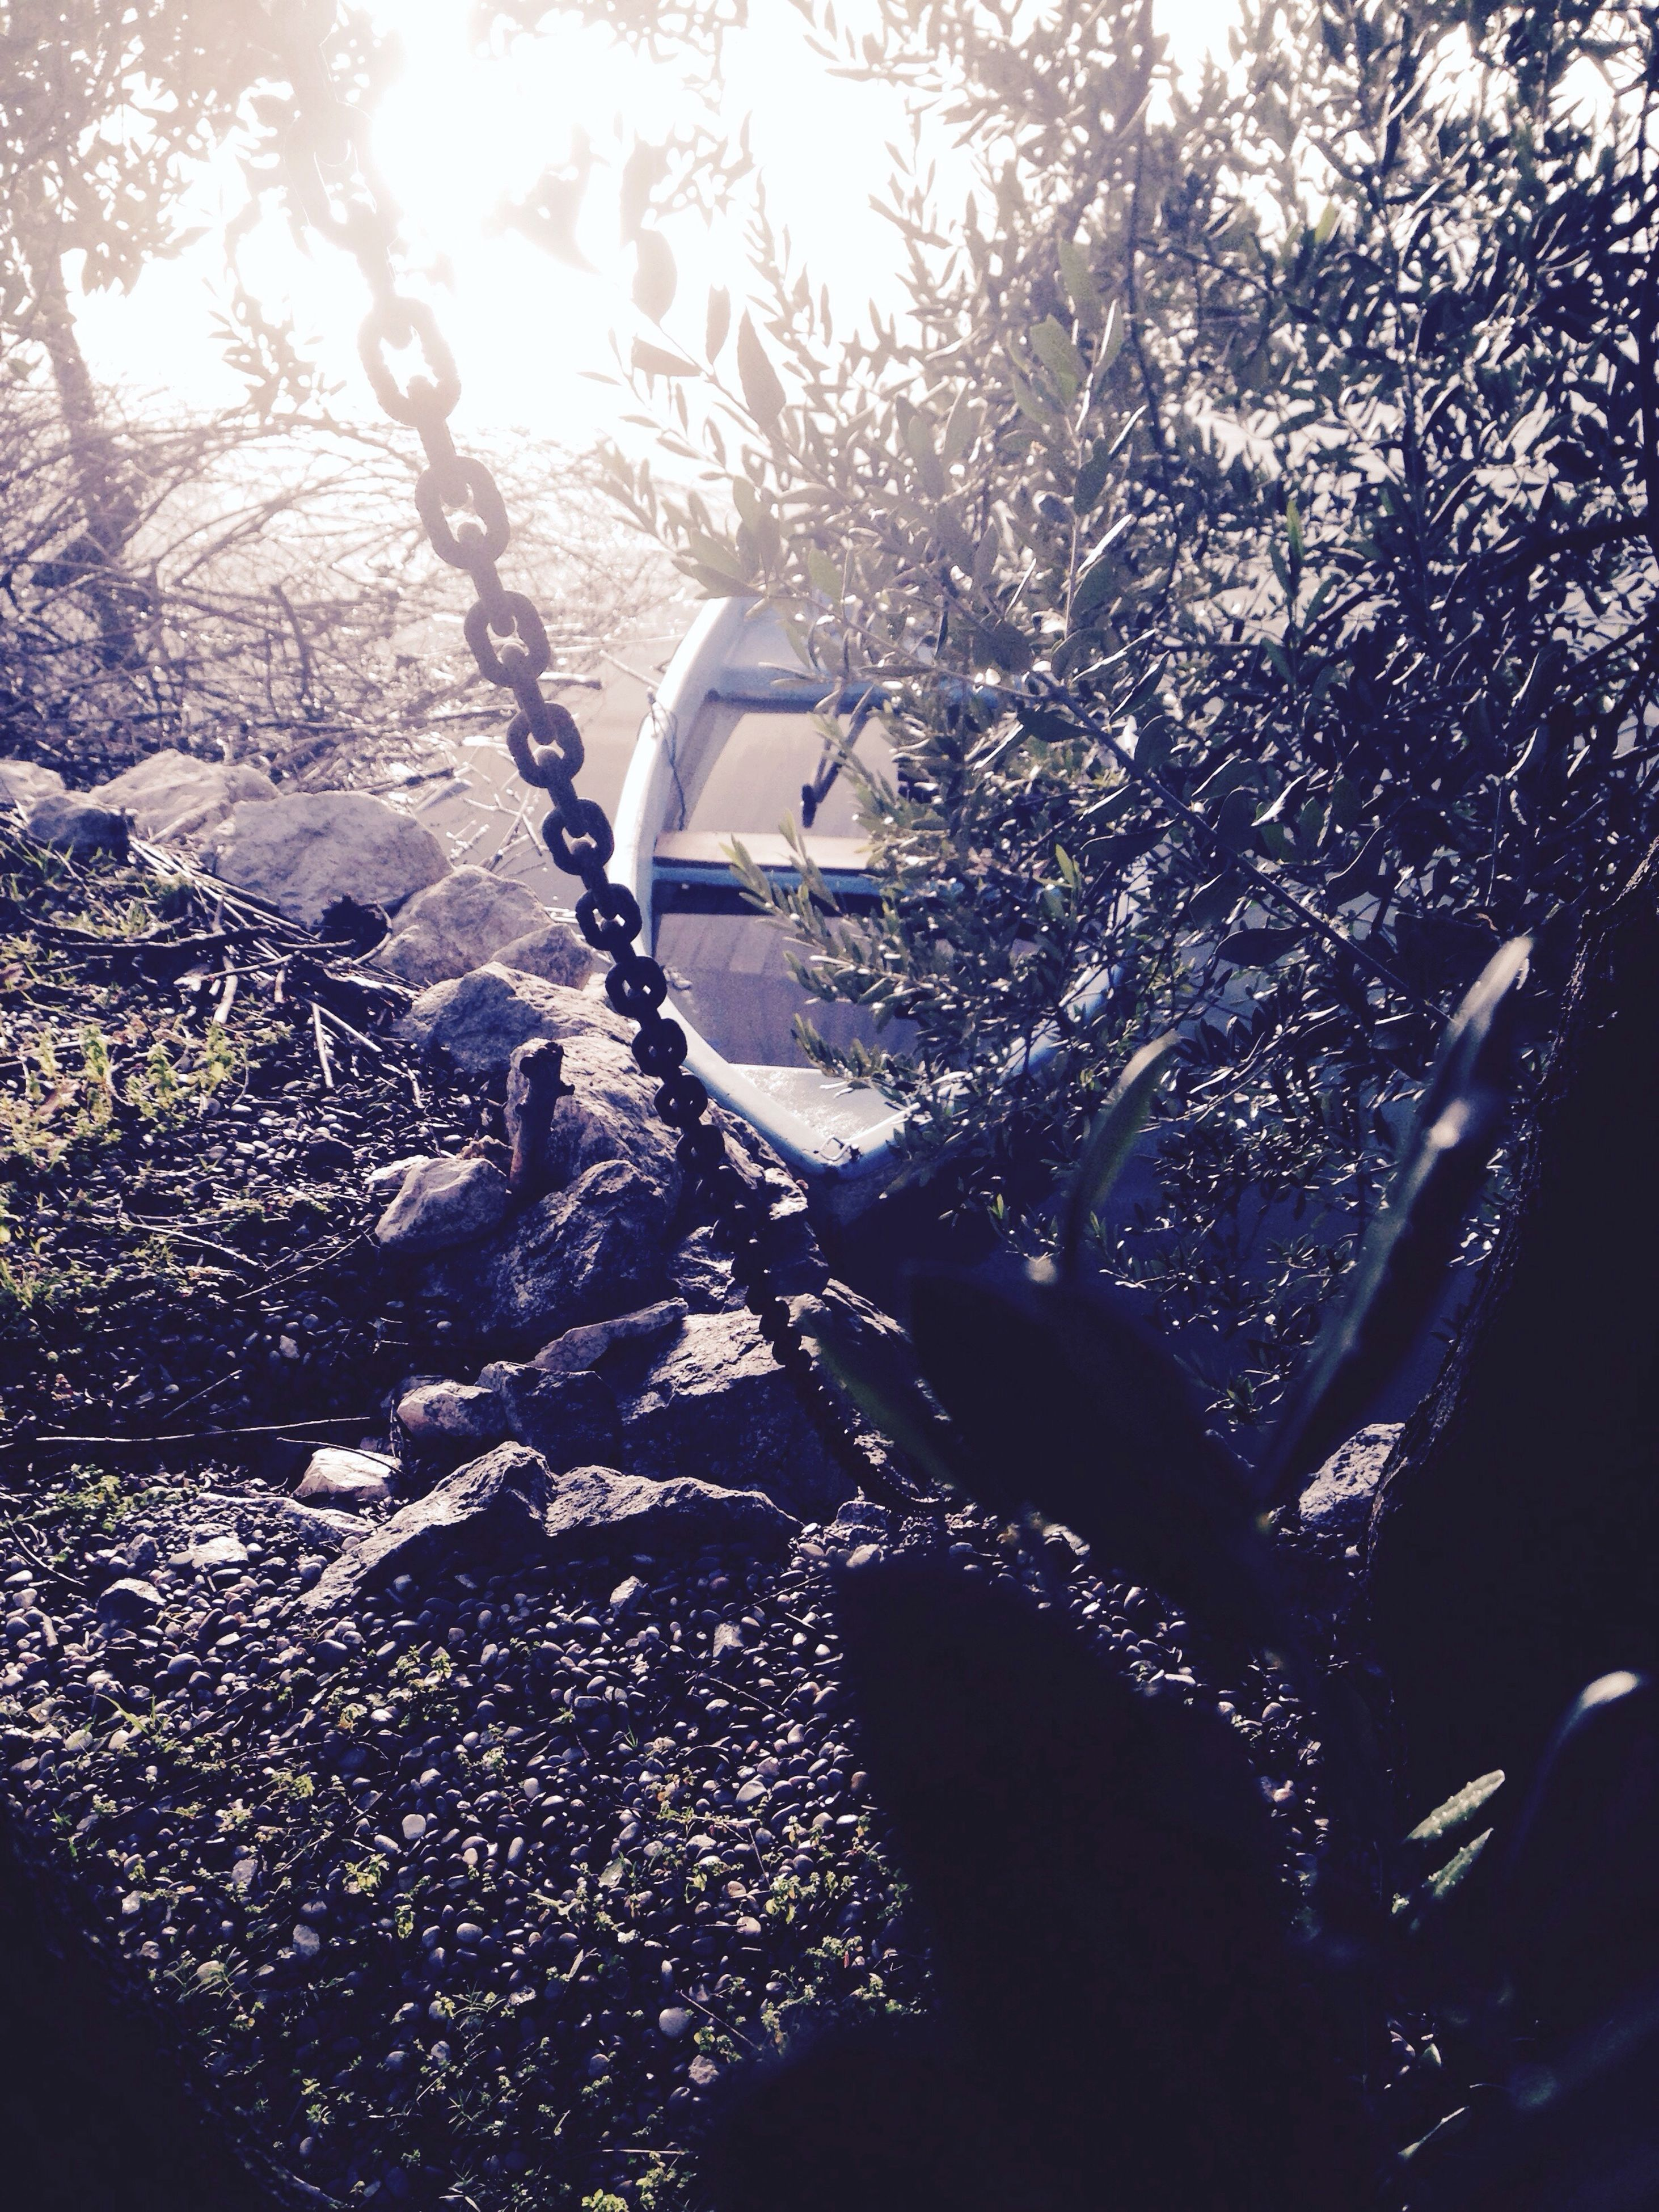 tree, sun, lens flare, sunlight, sunbeam, growth, close-up, nature, plant, car, no people, day, water, outdoors, drop, transportation, wet, focus on foreground, bright, land vehicle